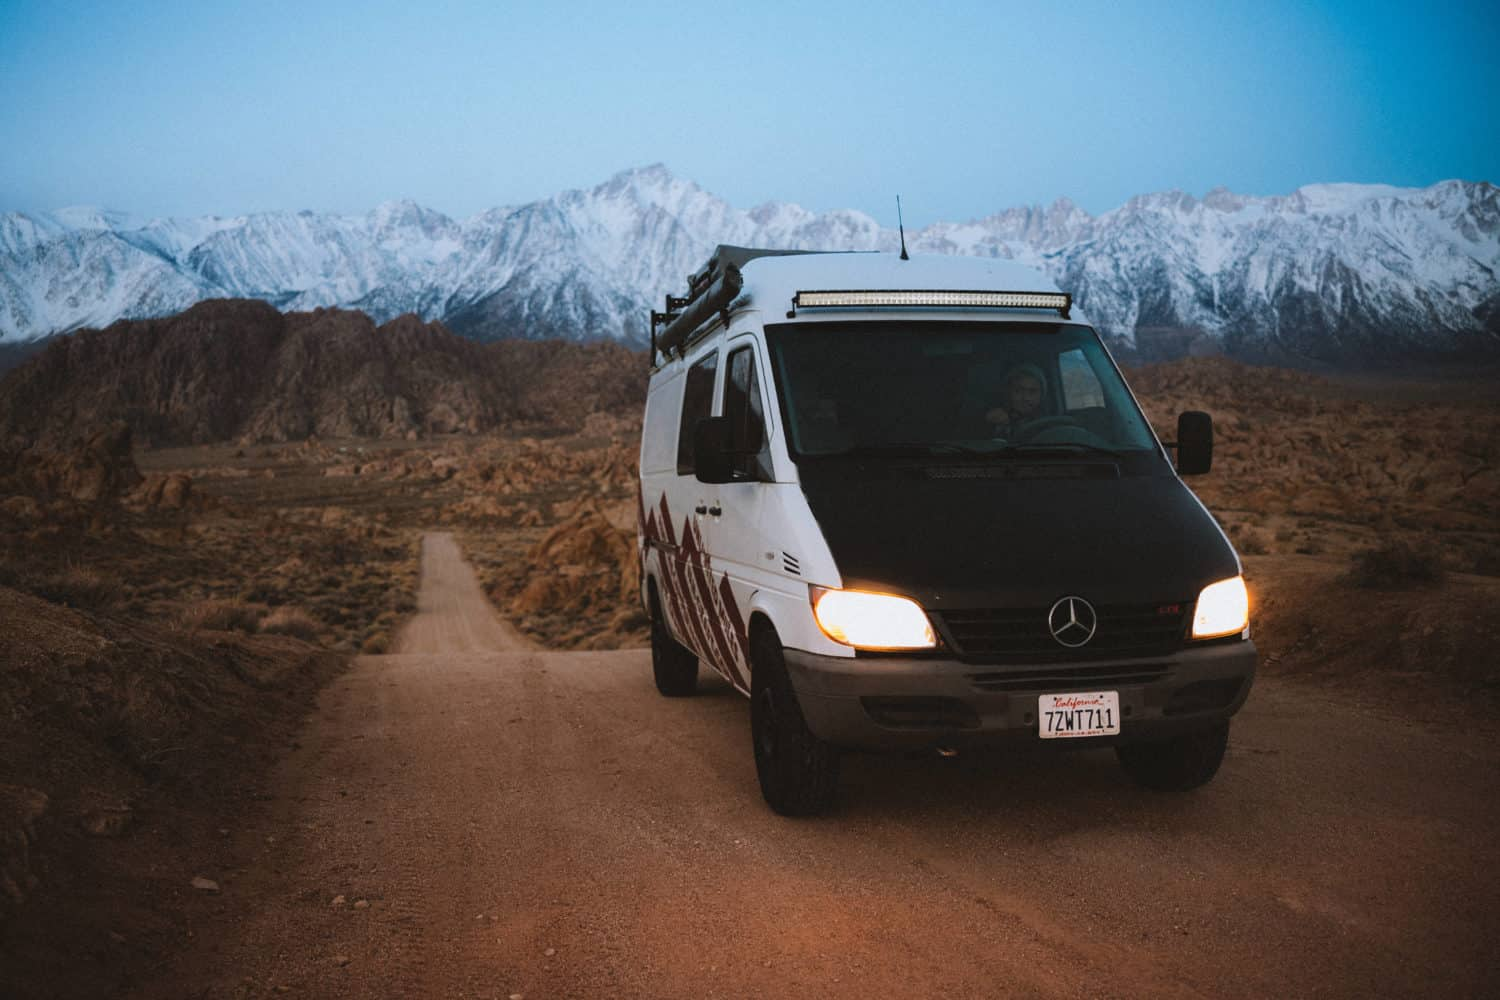 Berty Mandagie driving on Movie Road in Alabama Hills